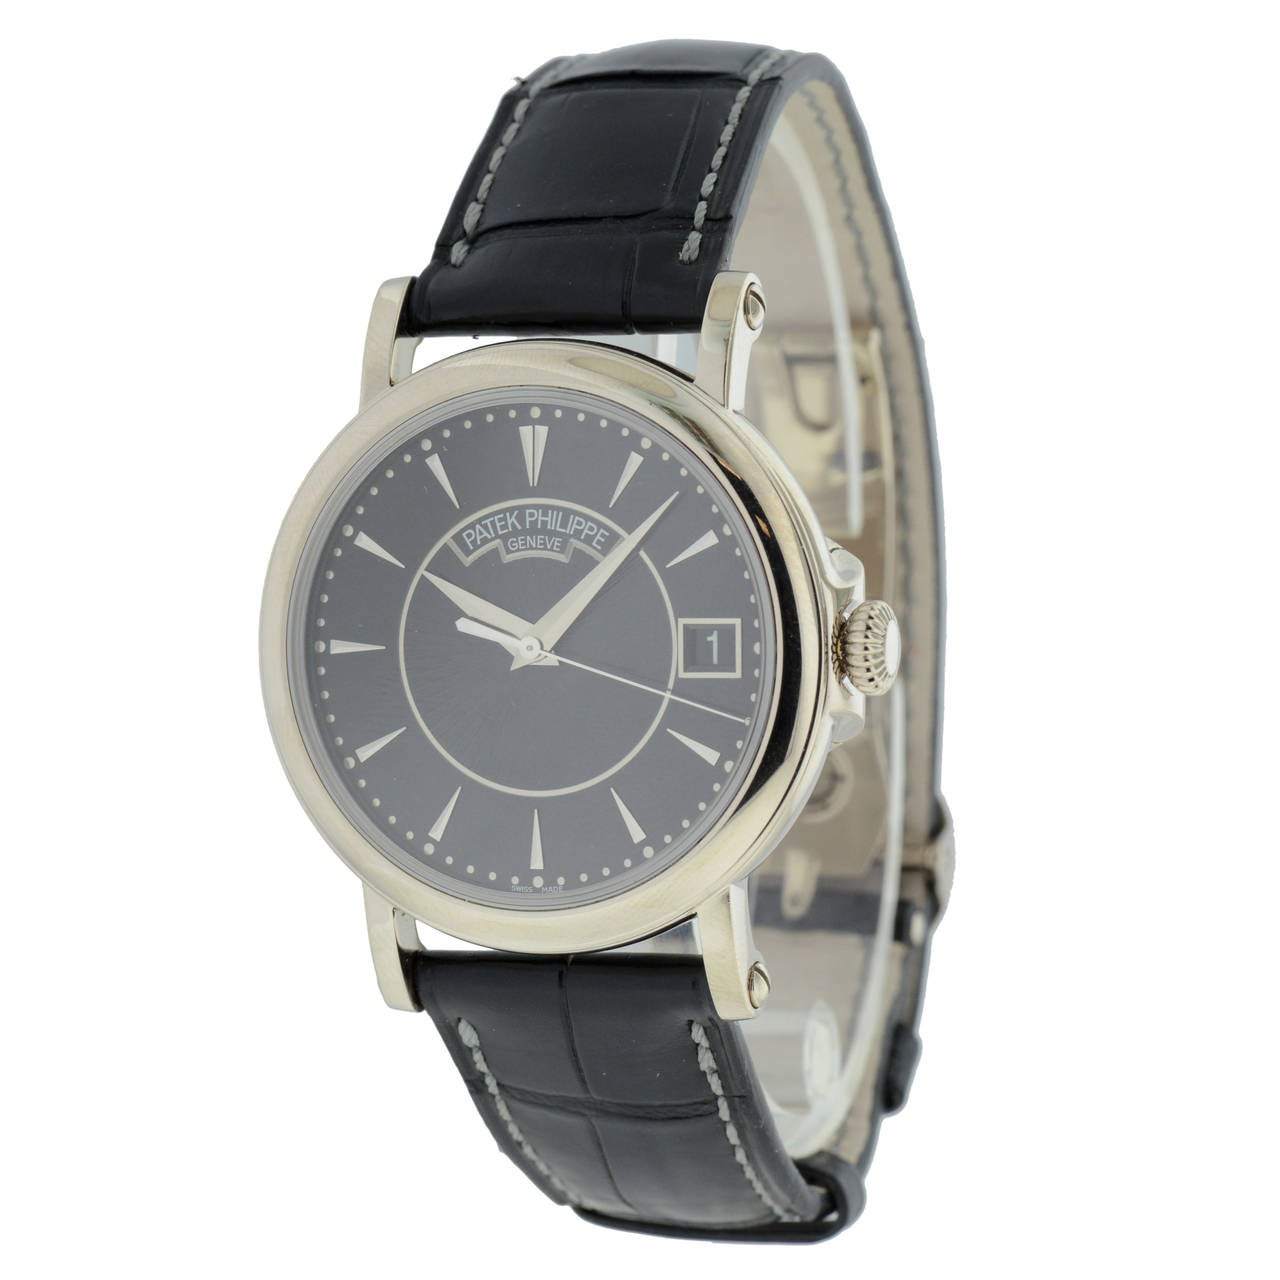 Patek Philippe White Gold Calatrava Self Winding Wristwatch Ref 5153G